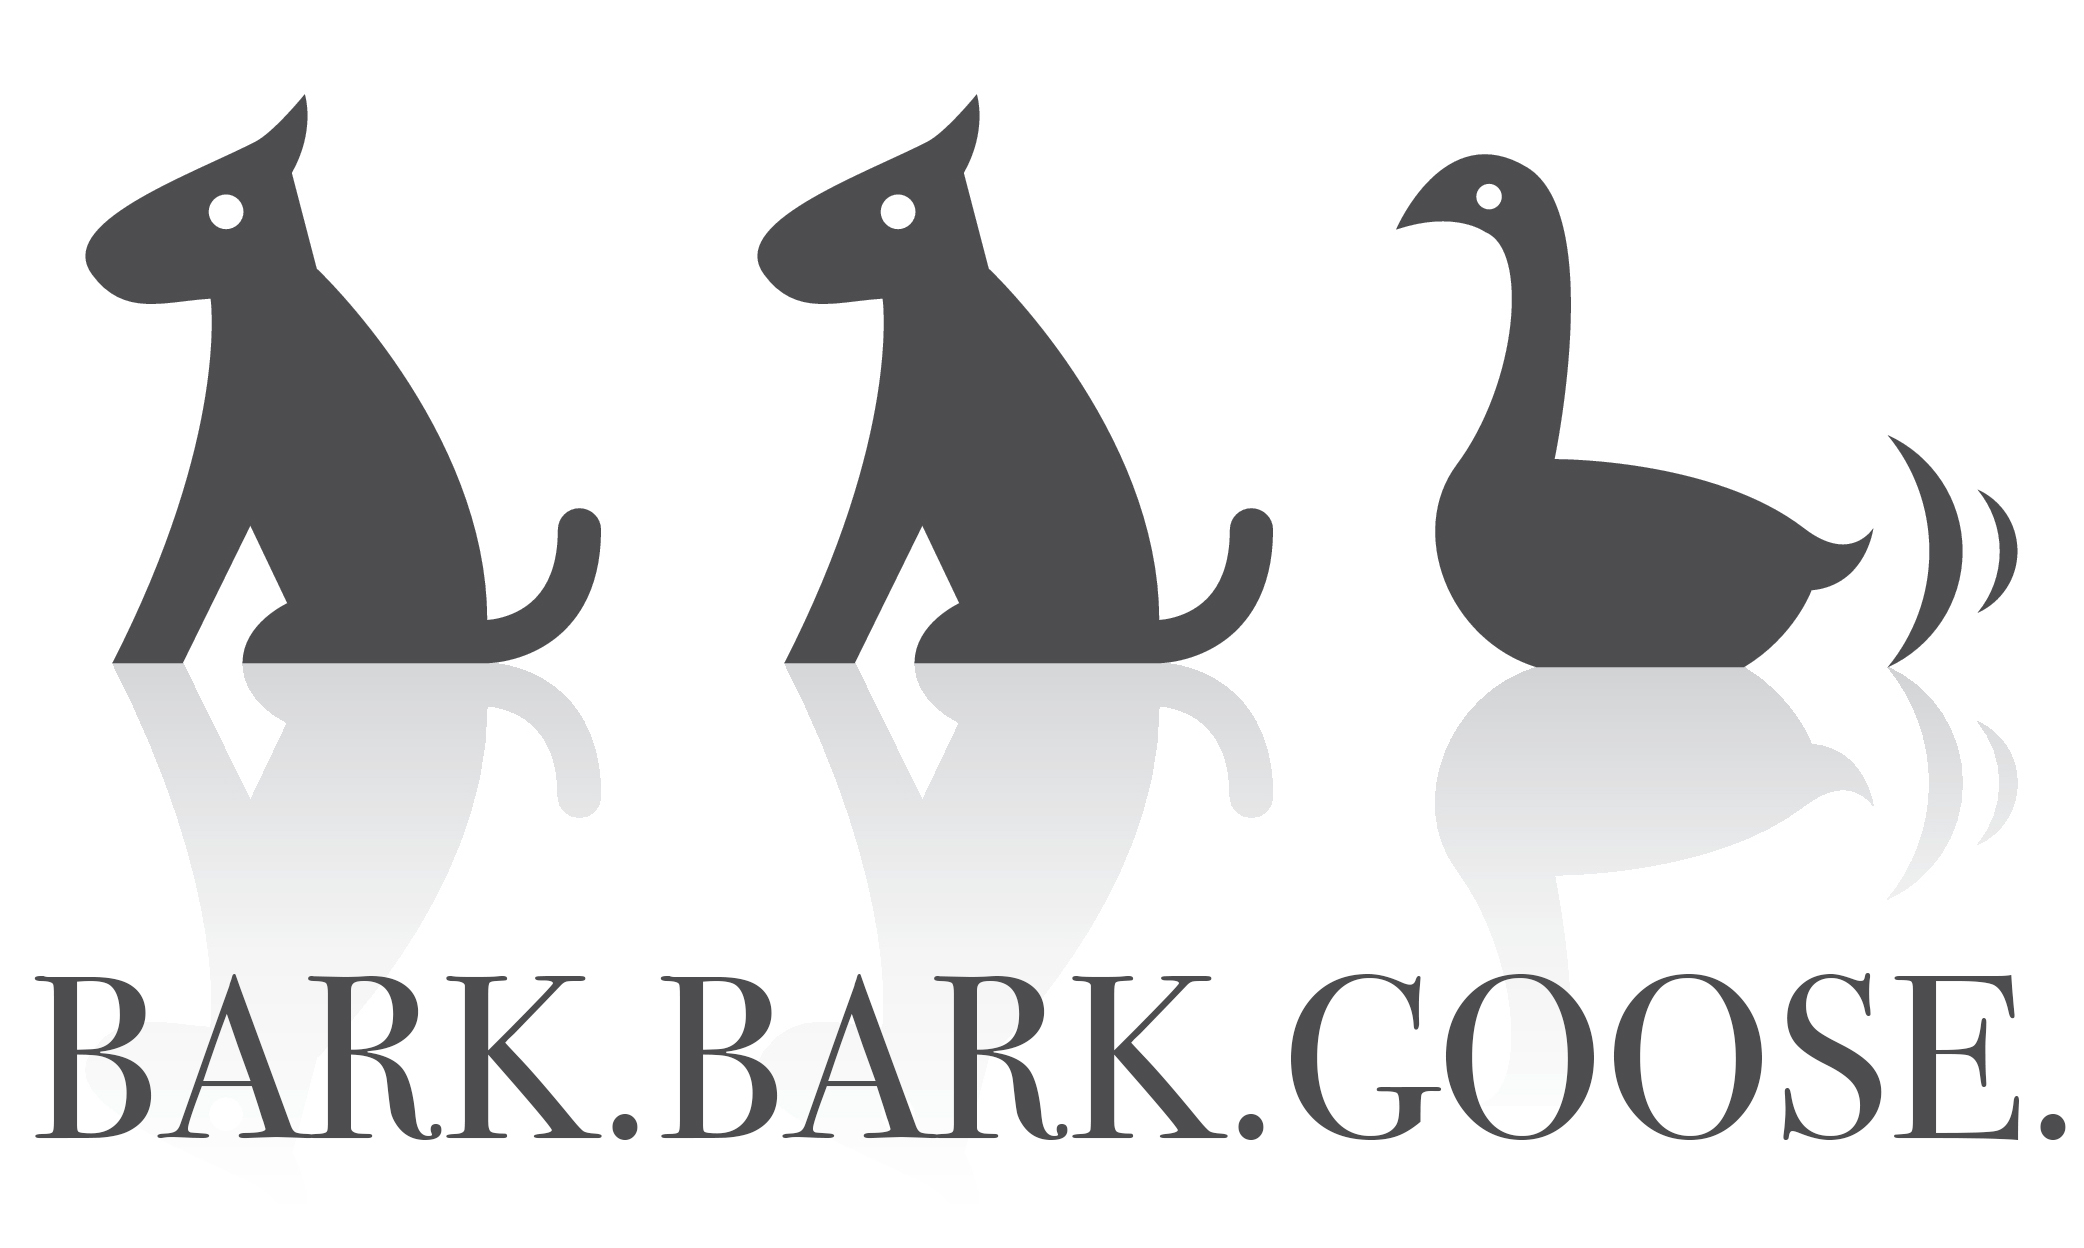 BARK-BARK-GOOSE-WITH-TEXT.jpg